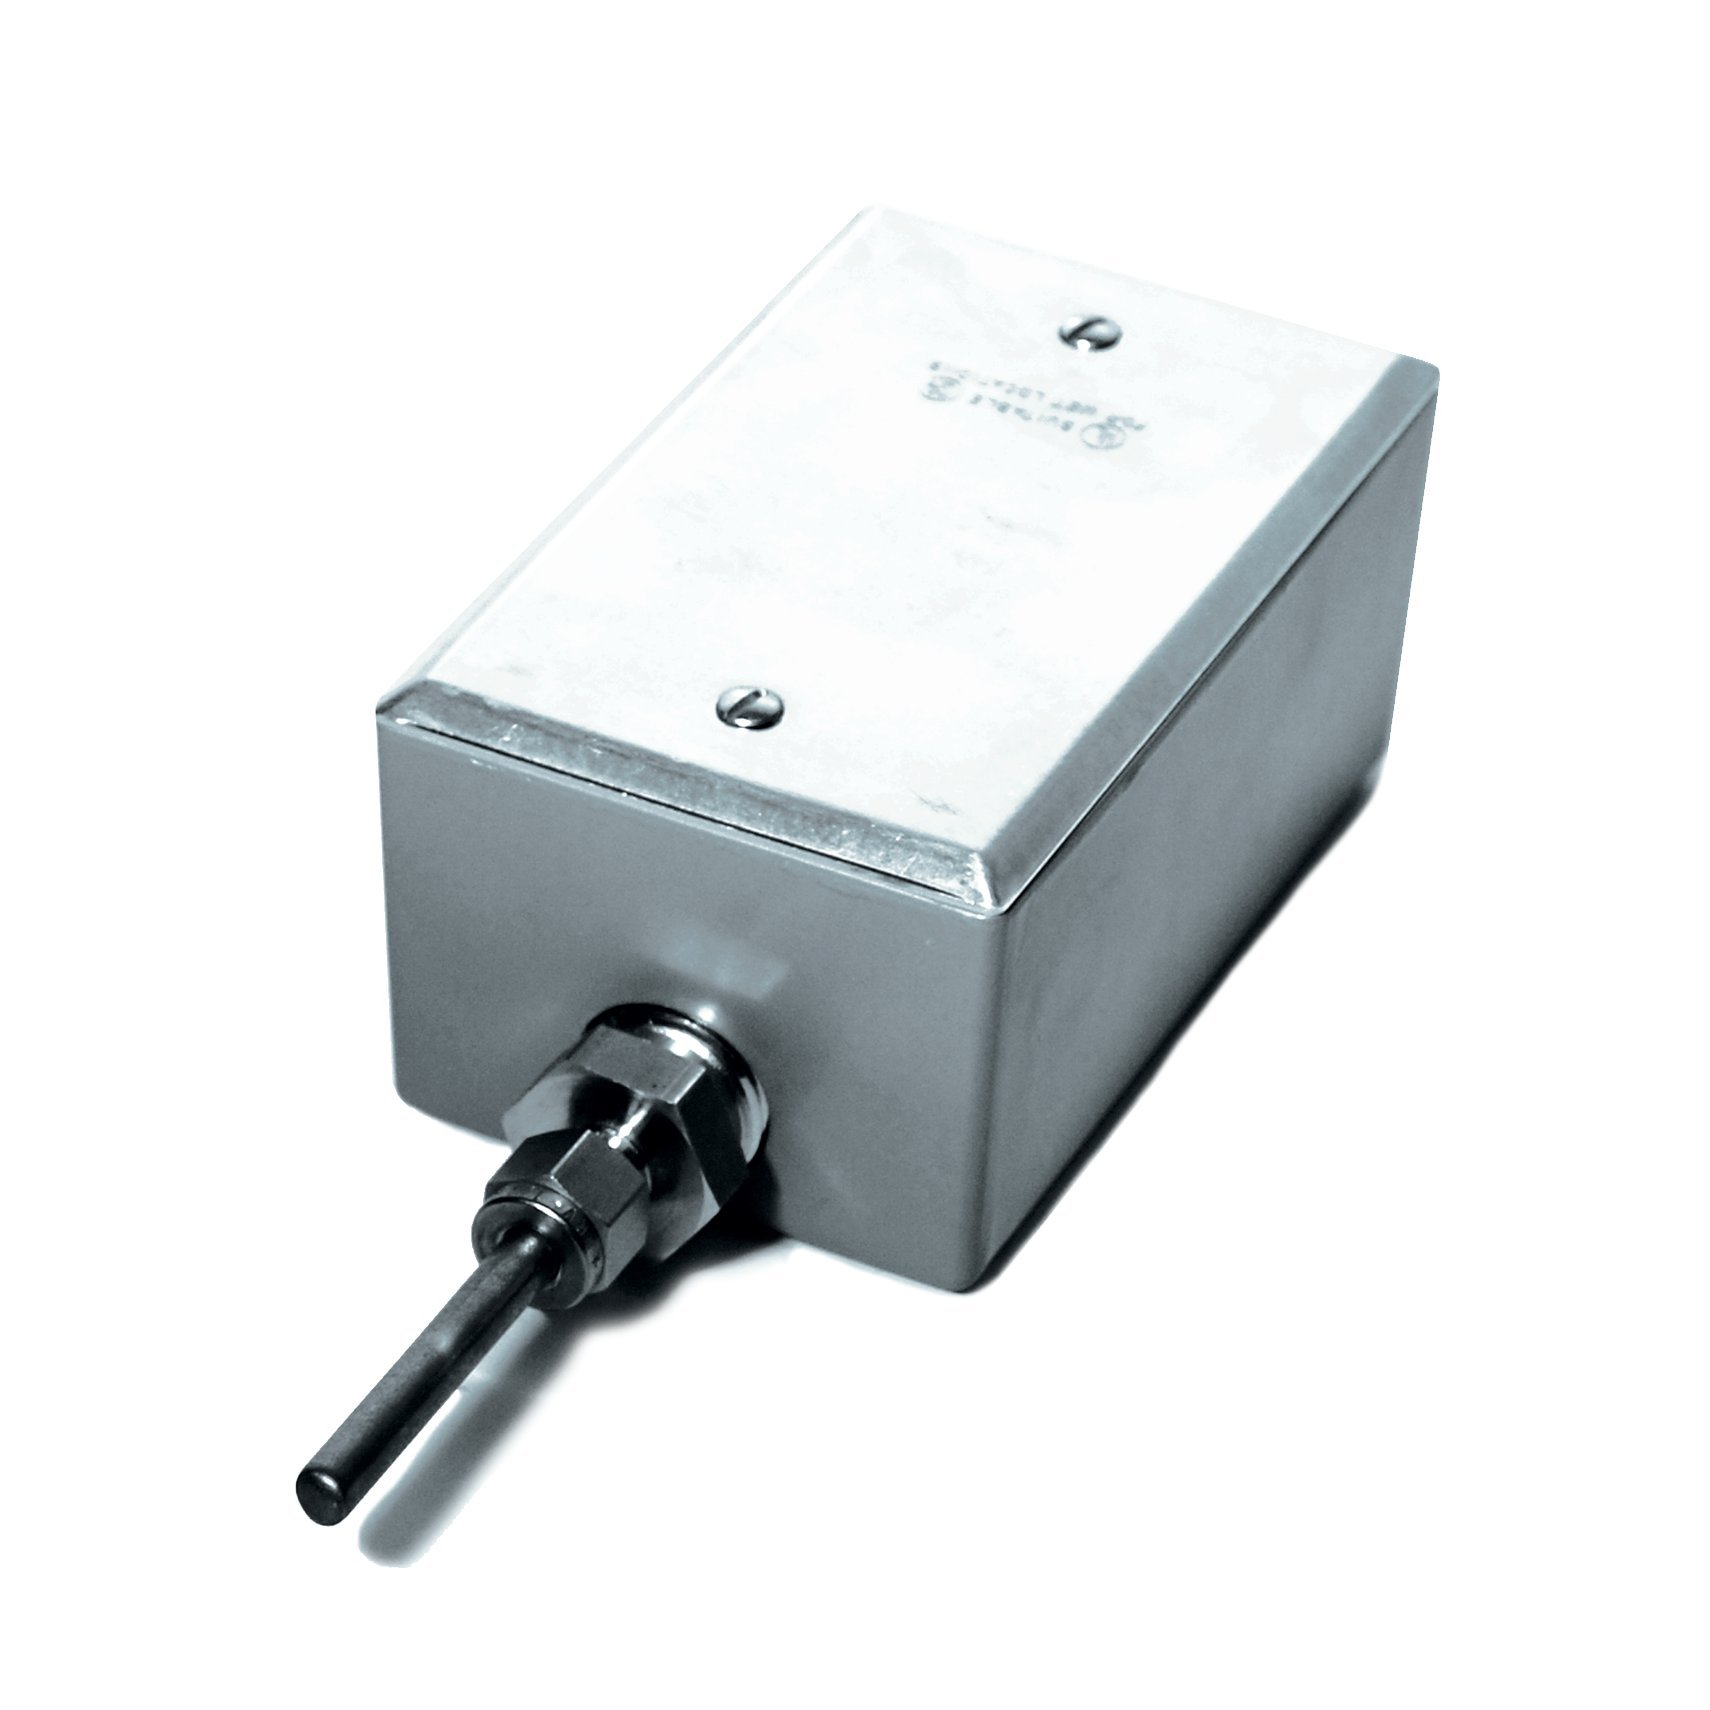 A/1K-3W-LT-O | ACI | Low Temp RTD 1000 ohm (3 wire) | Outdoor Outside Air Temperature Sensor |